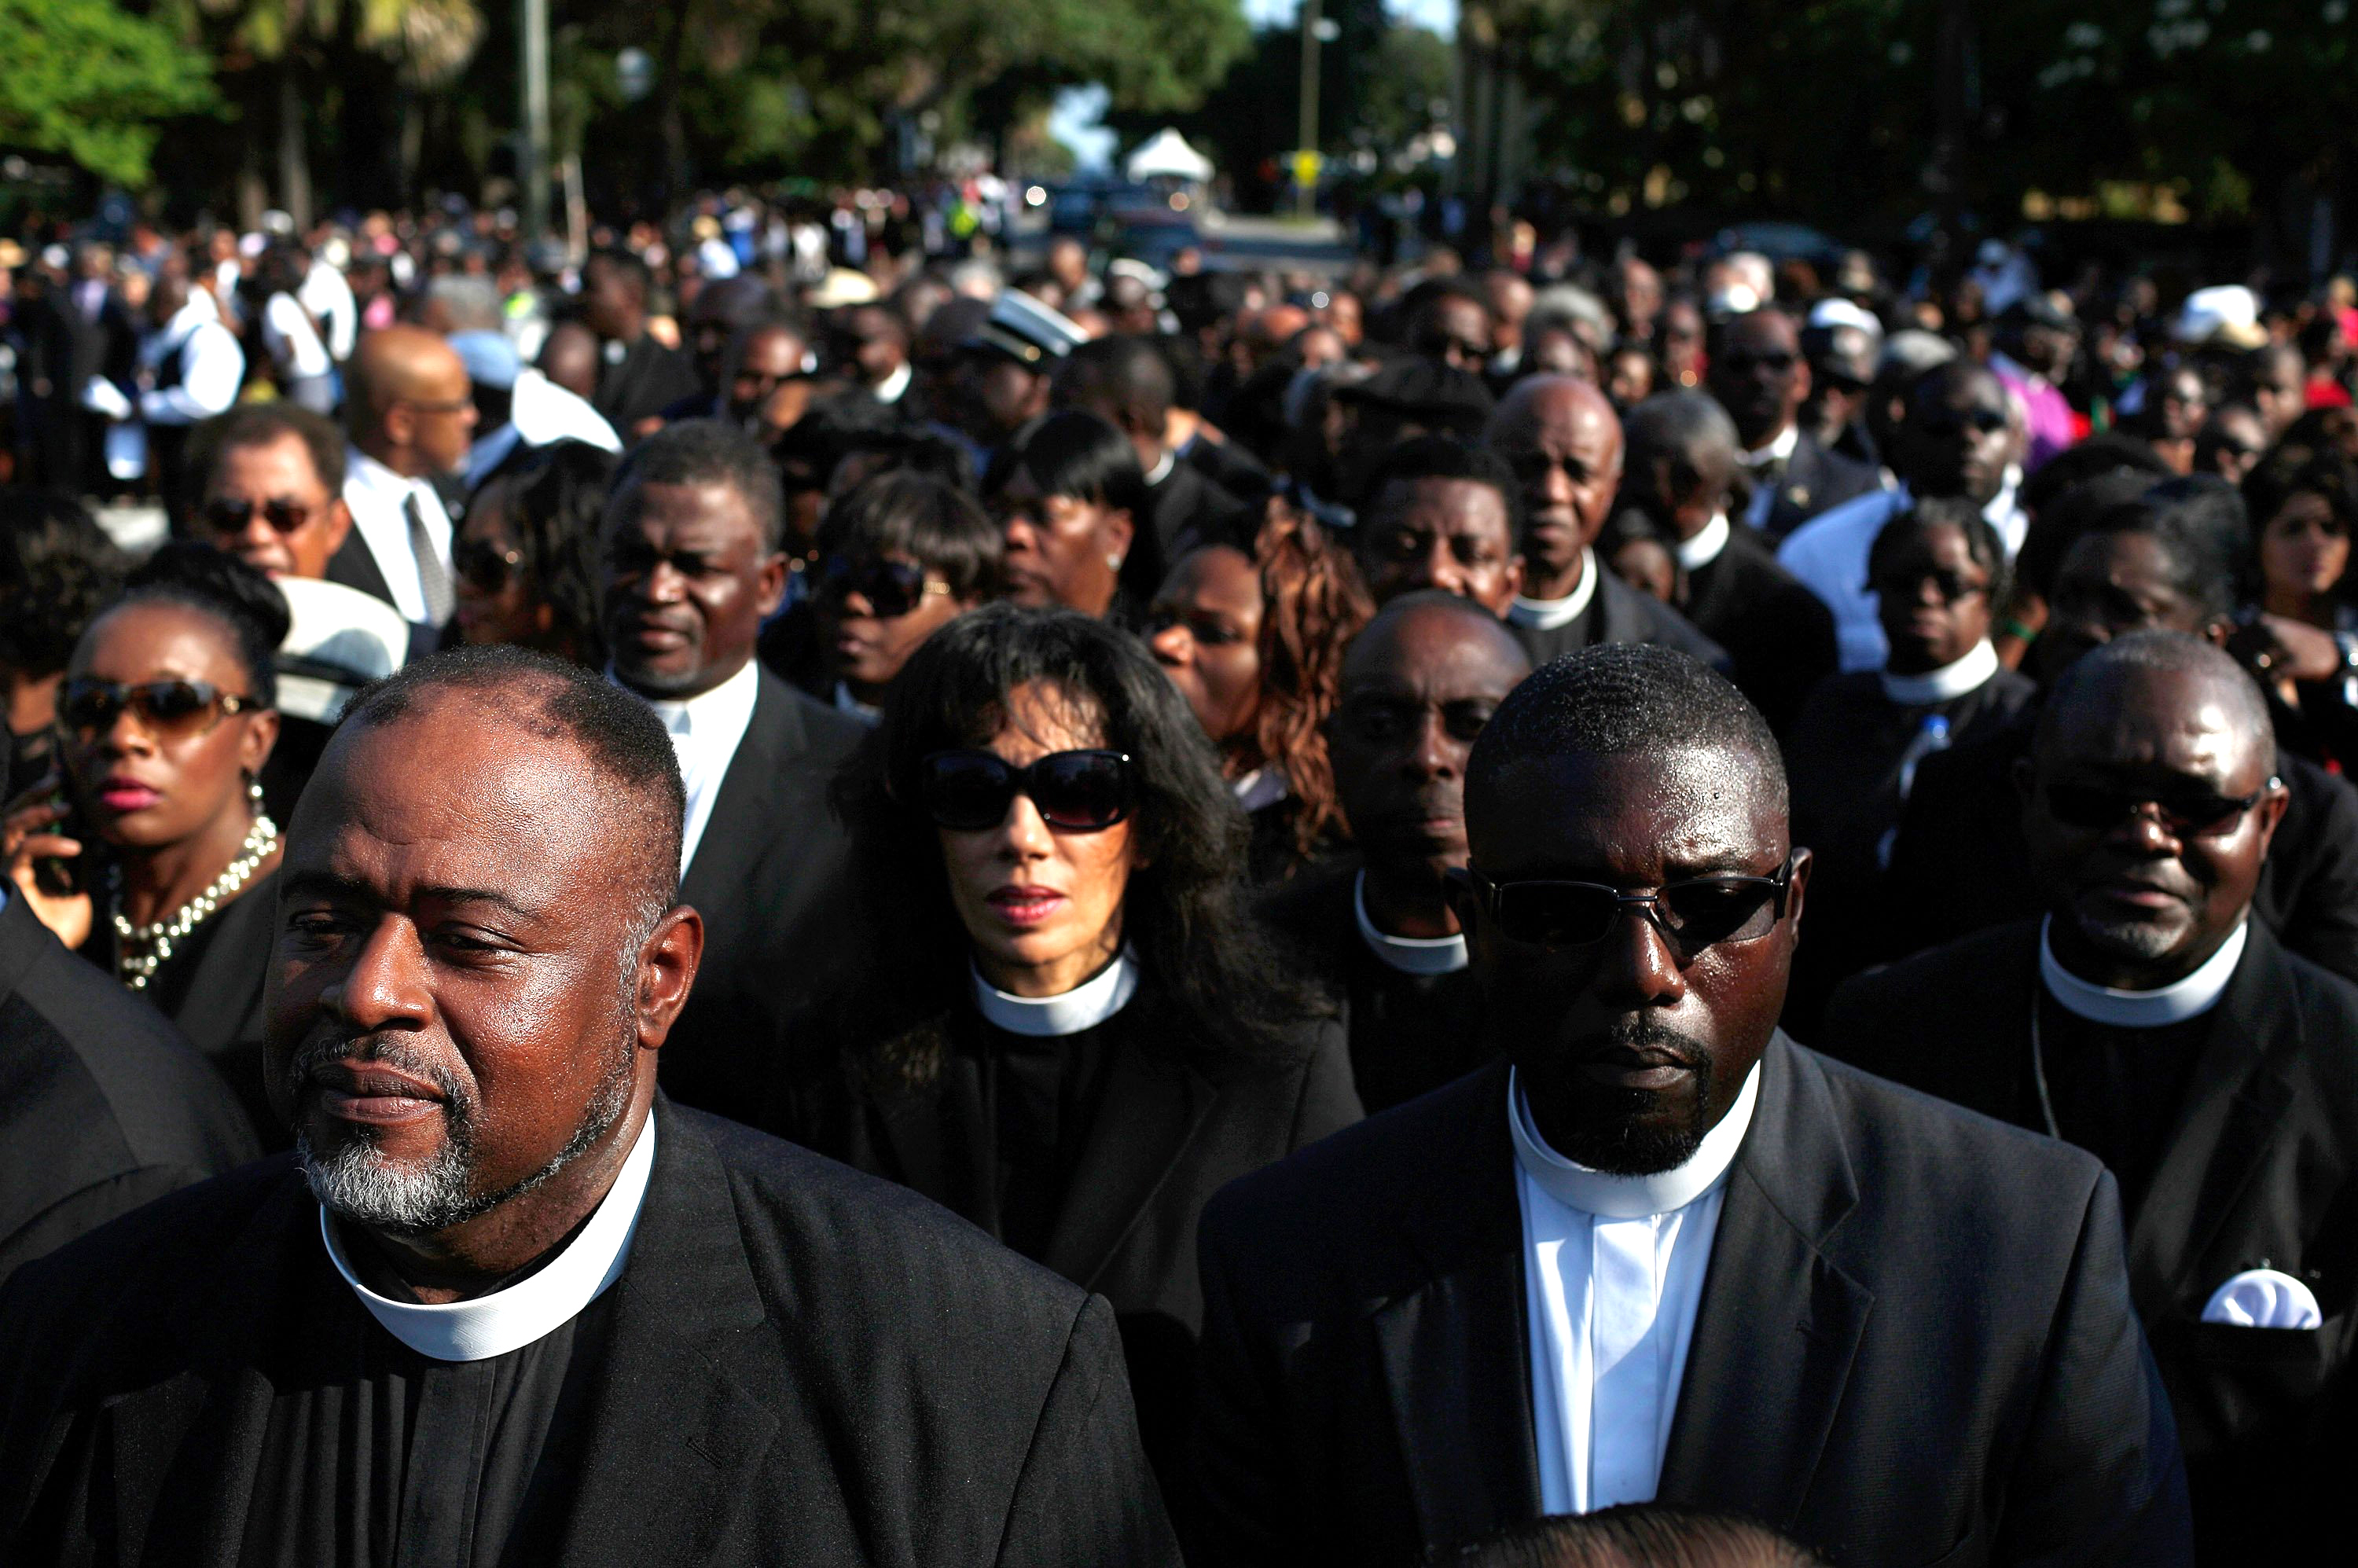 Members of the clergy wait to enter the funeral service where U.S. President Barack Obama will deliver the eulogy for South Carolina State senator and Rev. Clementa Pinckney who was killed along with eight others in a mass shooting June 26, 2015 in Charleston, S.C.